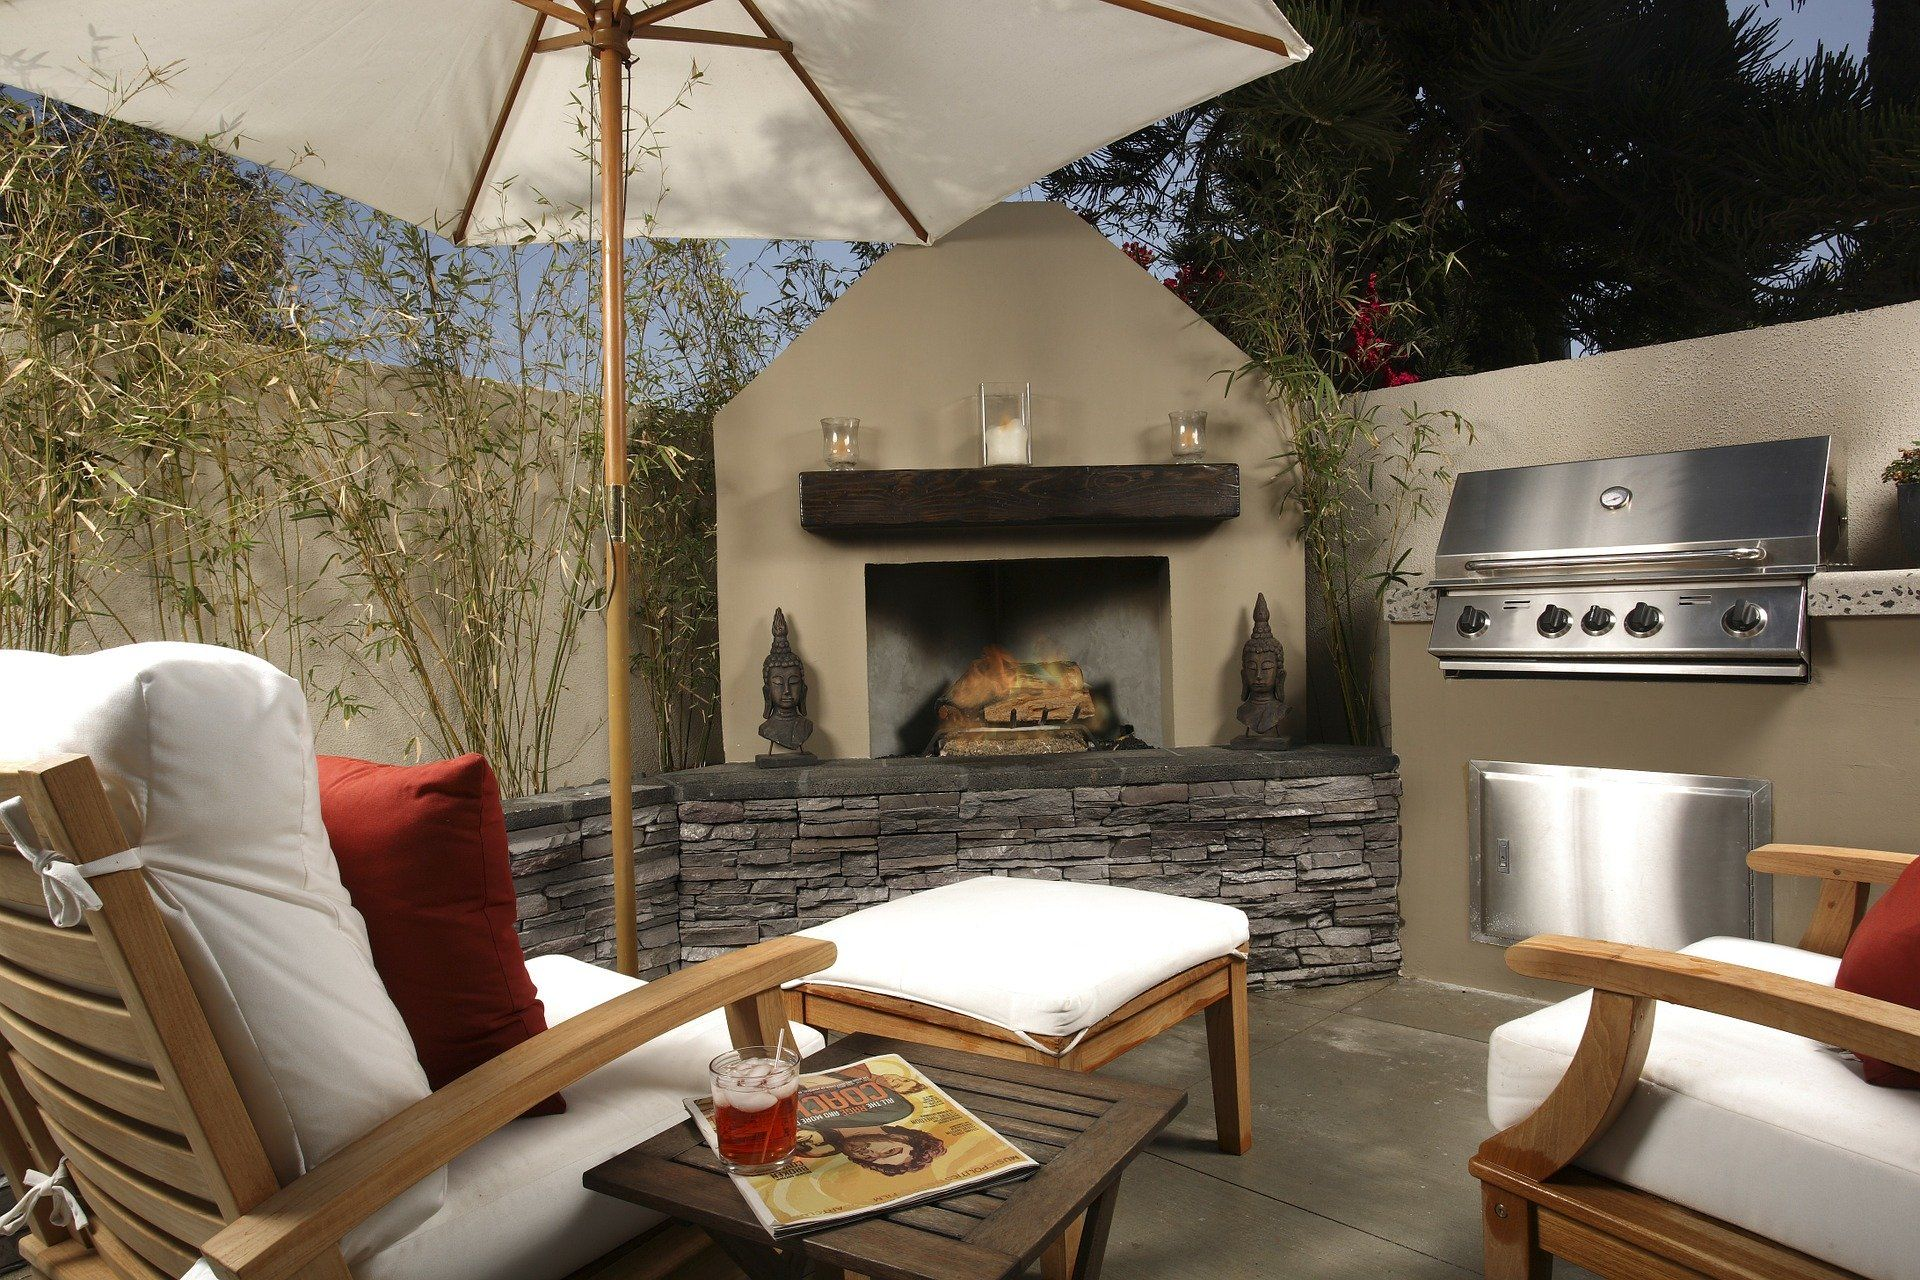 Newly remodeled outdoor fireplace and patio in Rochester, NY.